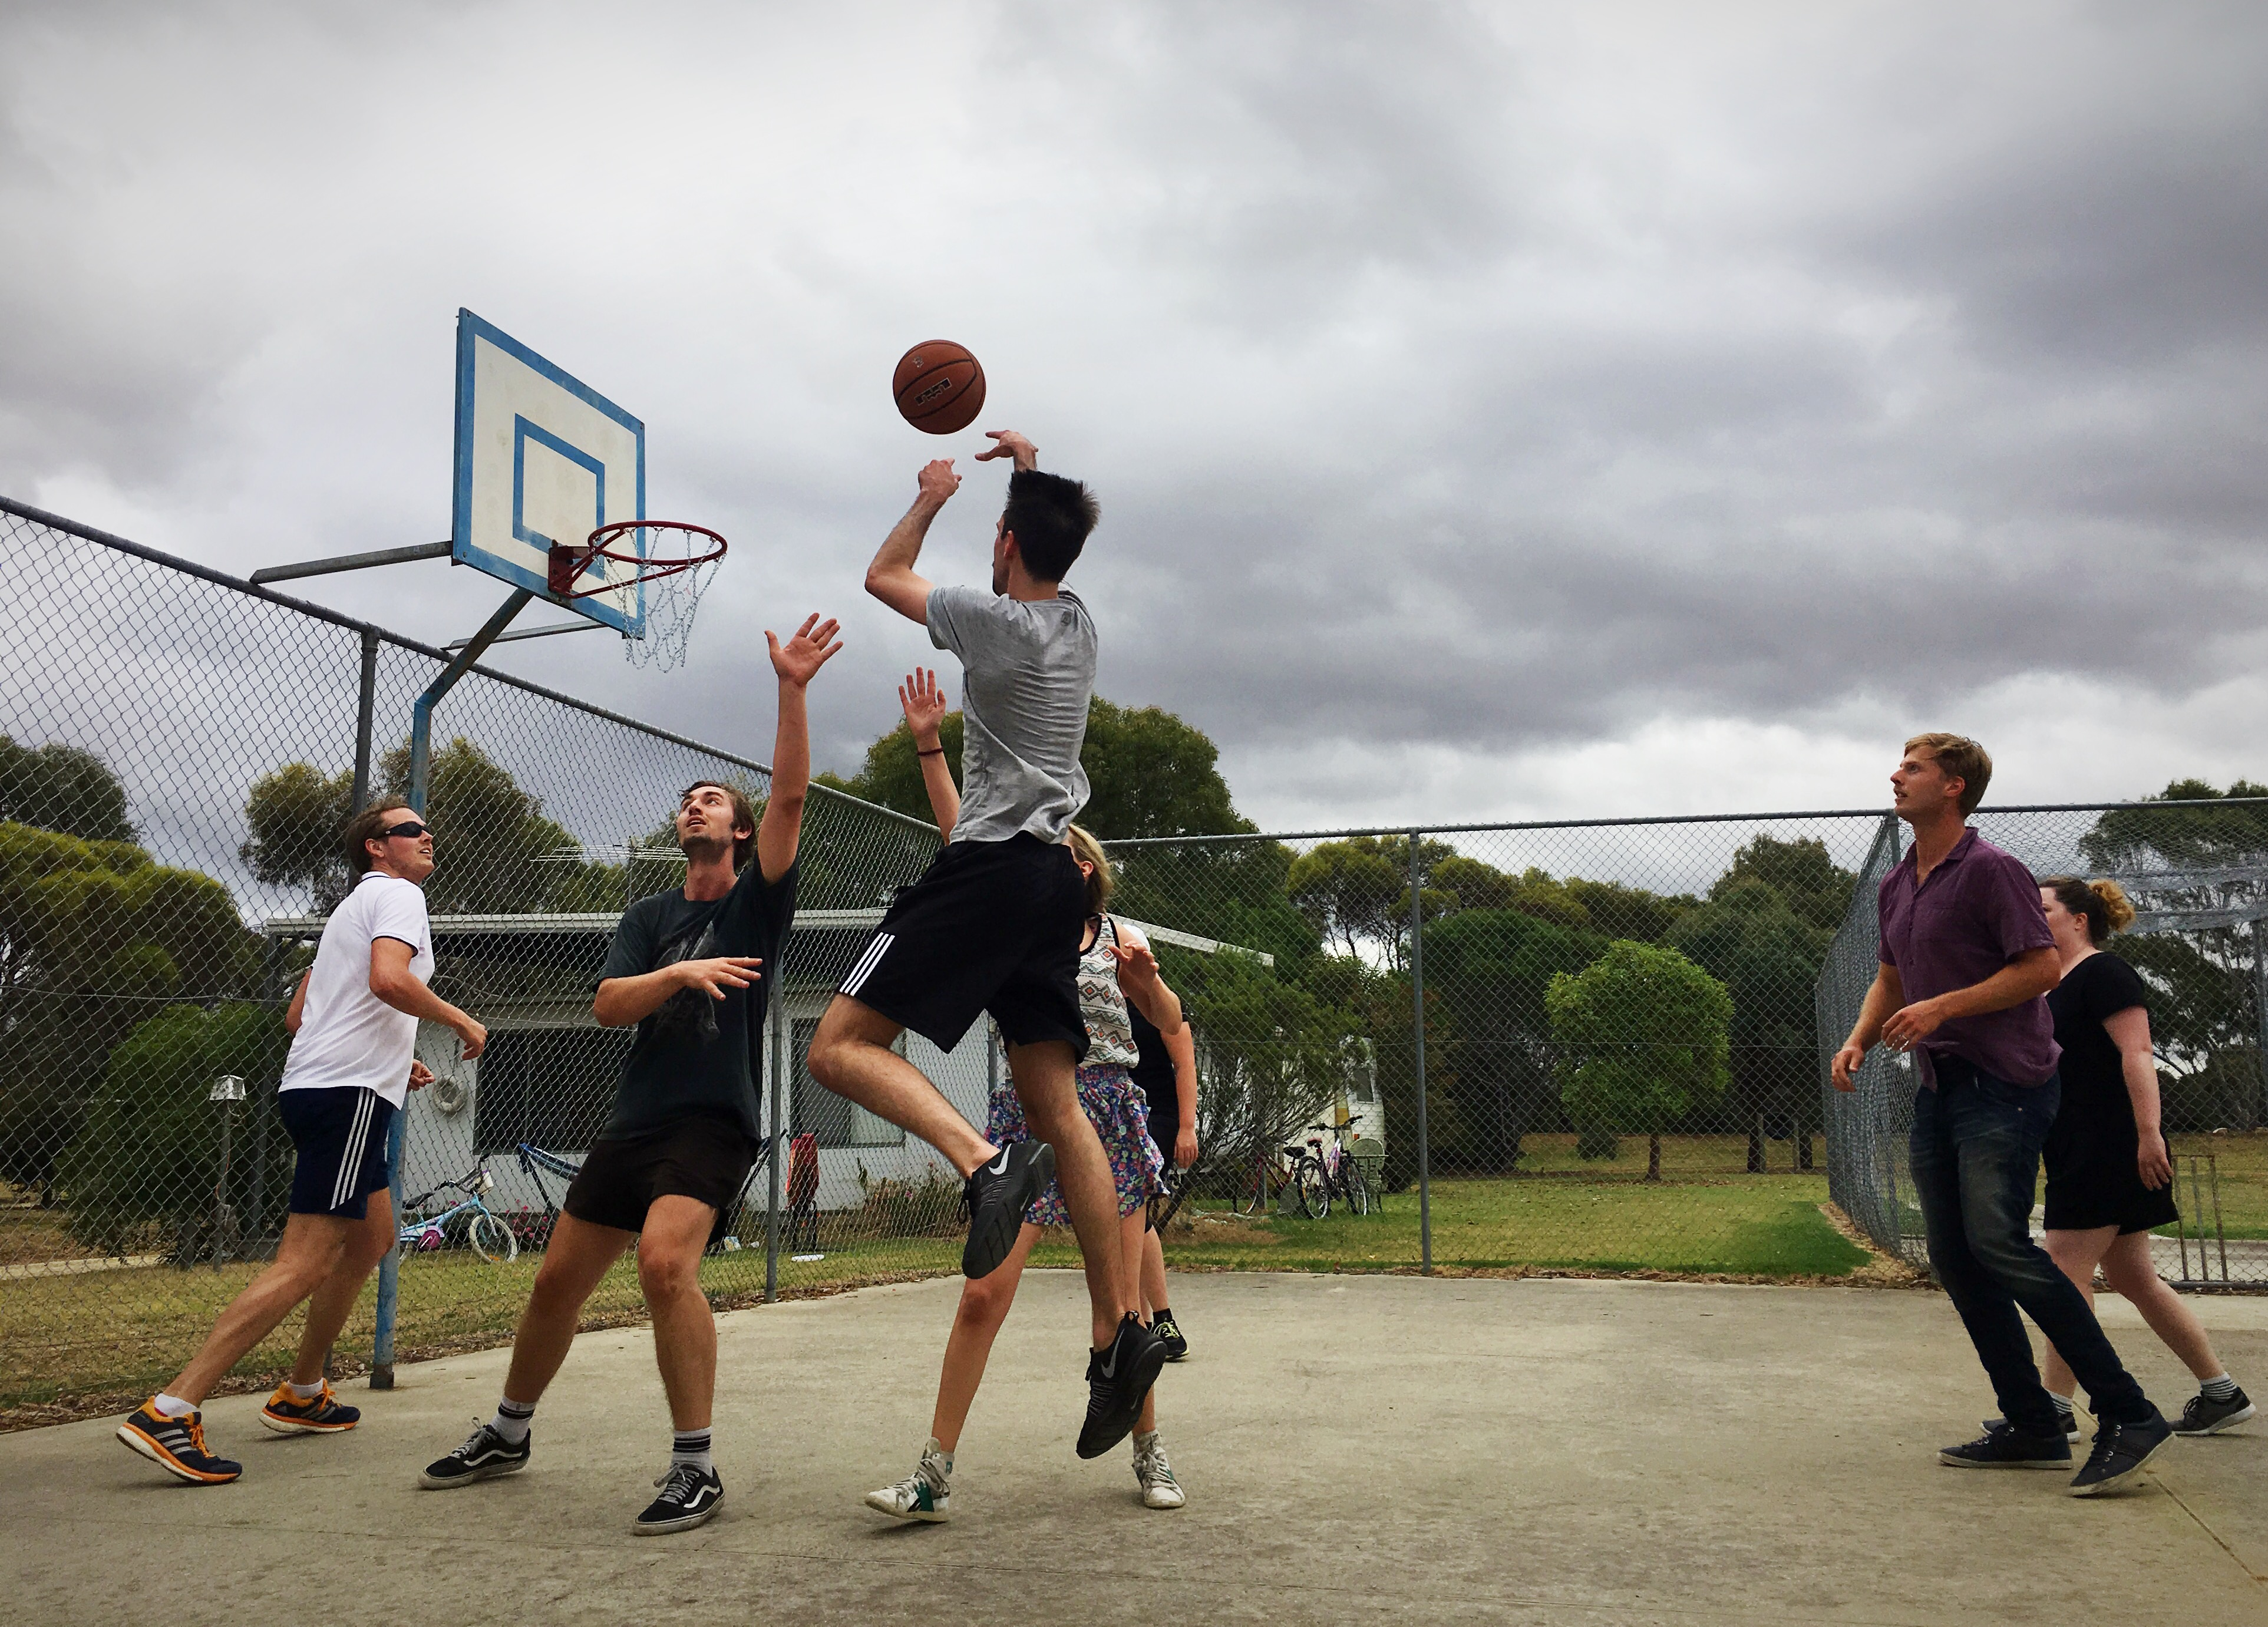 Sports out on the Basketball court.